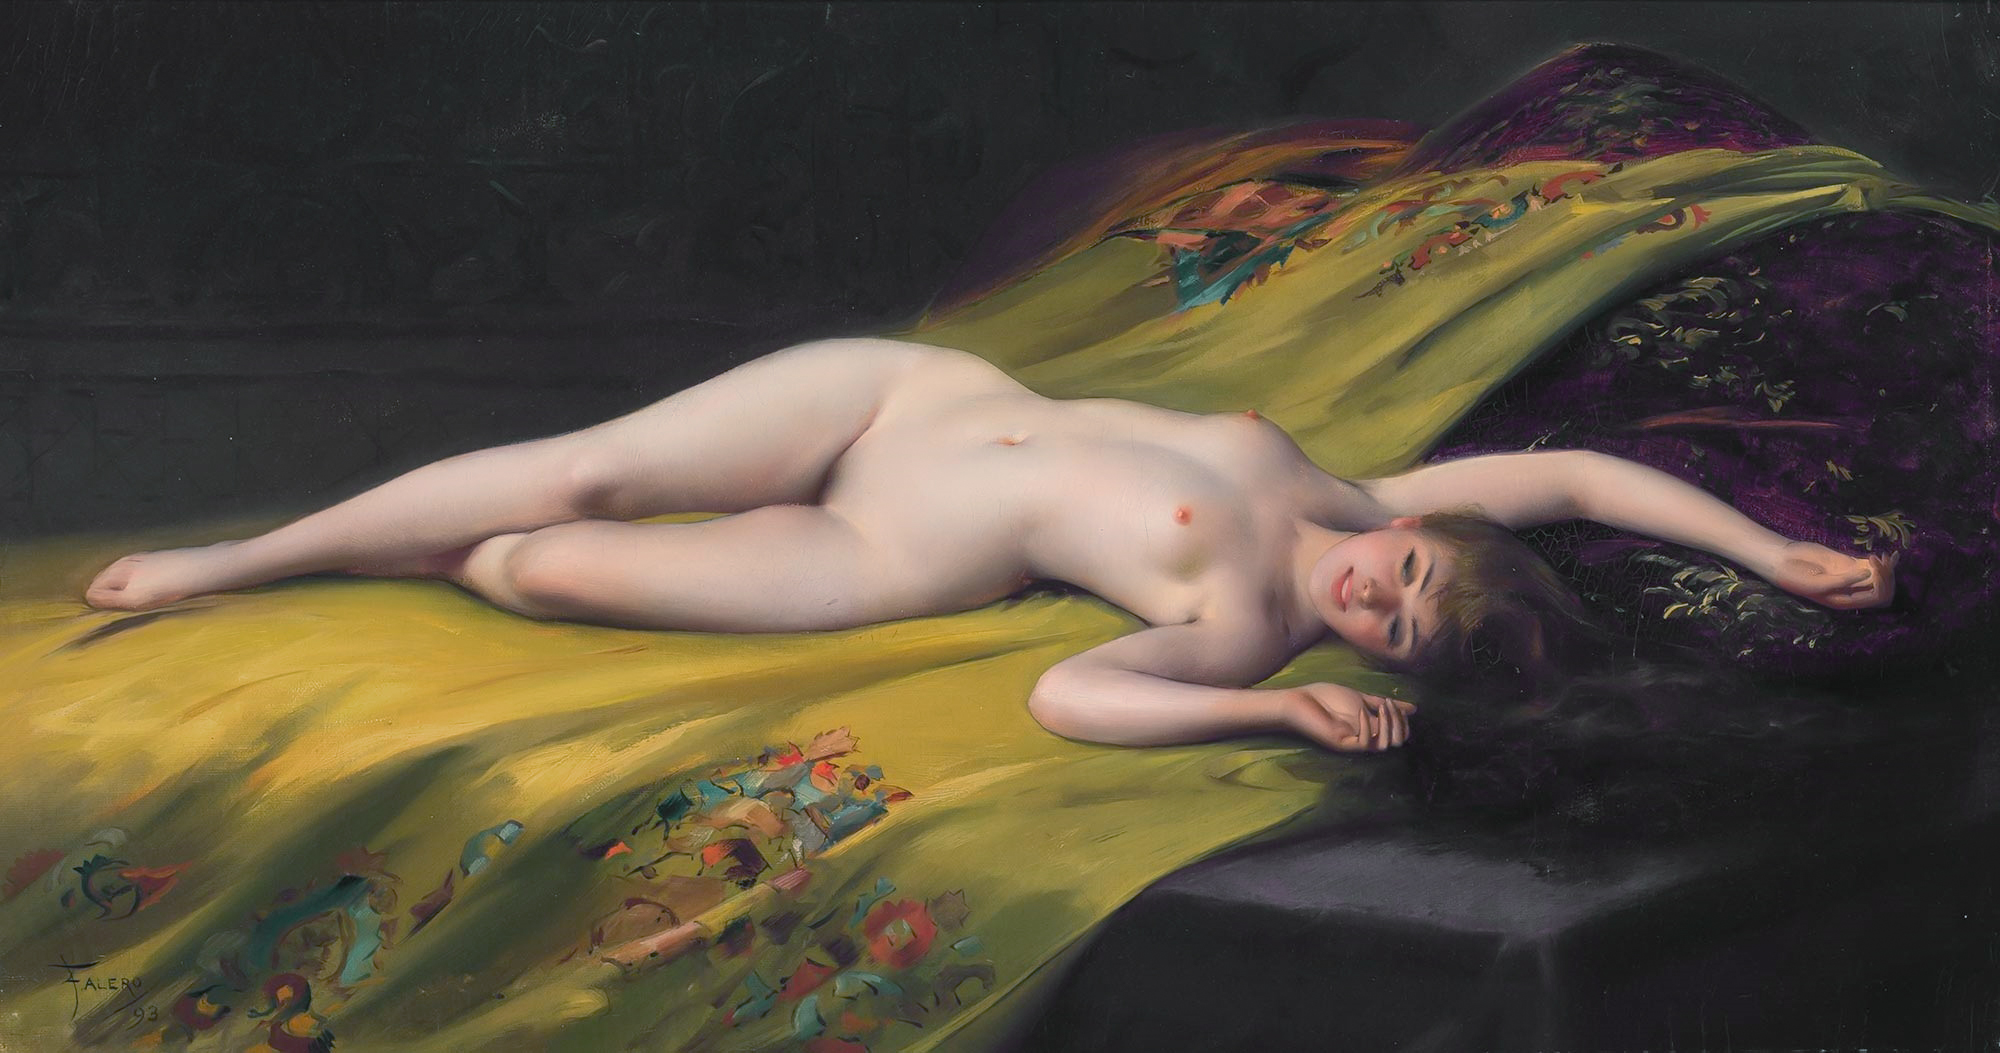 http://upload.wikimedia.org/wikipedia/commons/a/a6/Reclining_Nude%2C_by_Luis_Ricardo_Falero.jpg